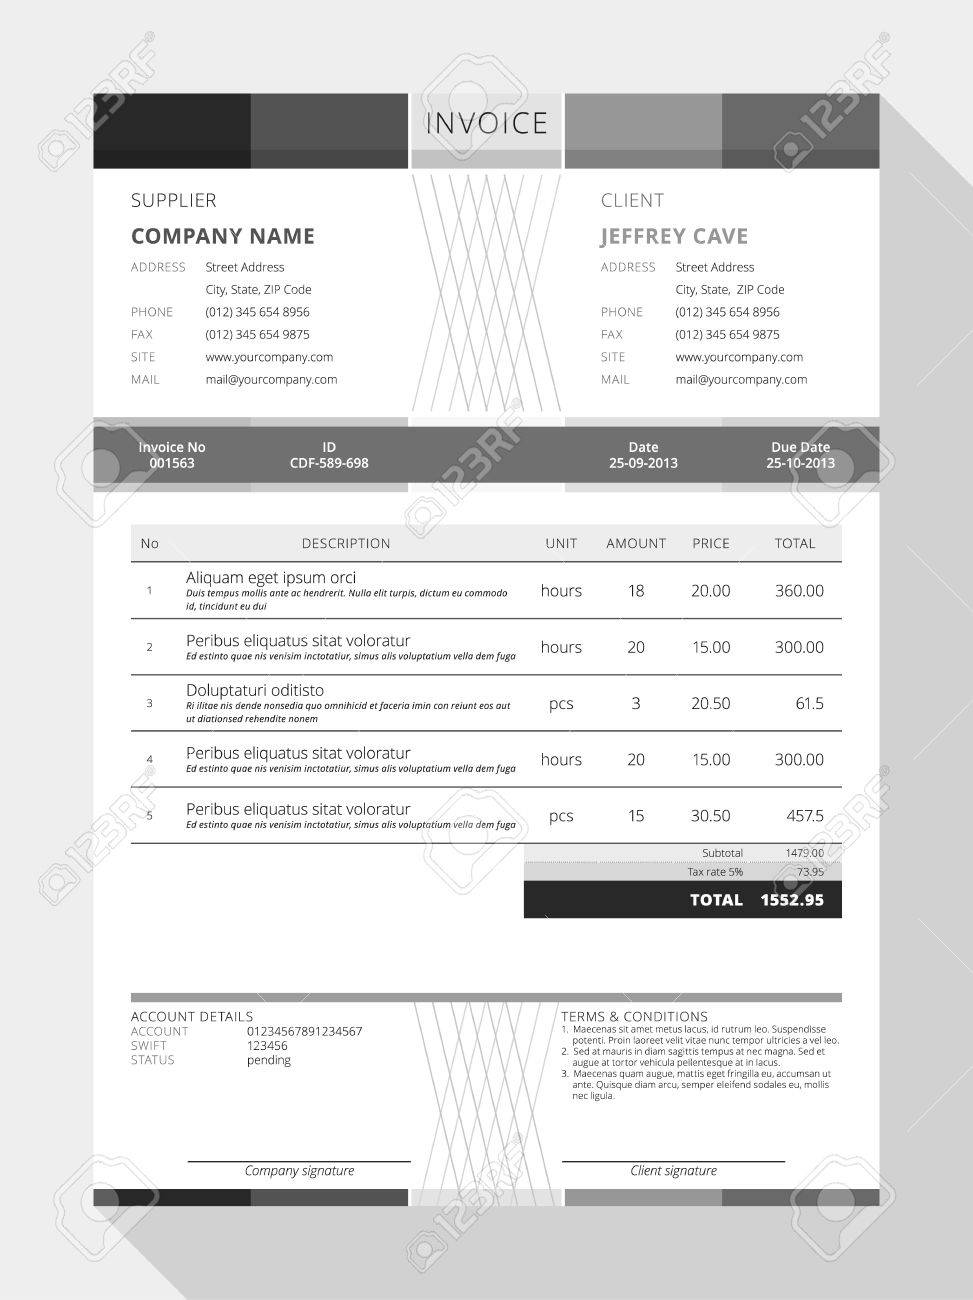 Howcanigettallerus  Fascinating Design An Invoice  Professional Graphic Design Invoice  With Magnificent Vector Customizable Invoice Form Template Design Vector   Design An Invoice With Charming Mercedes Invoice Also Invoice Template Excel Australia In Addition Invoice Php Script And Easy Invoice Generator As Well As Self Billed Invoice Additionally Simple Sales Invoice Template From Happytomco With Howcanigettallerus  Magnificent Design An Invoice  Professional Graphic Design Invoice  With Charming Vector Customizable Invoice Form Template Design Vector   Design An Invoice And Fascinating Mercedes Invoice Also Invoice Template Excel Australia In Addition Invoice Php Script From Happytomco